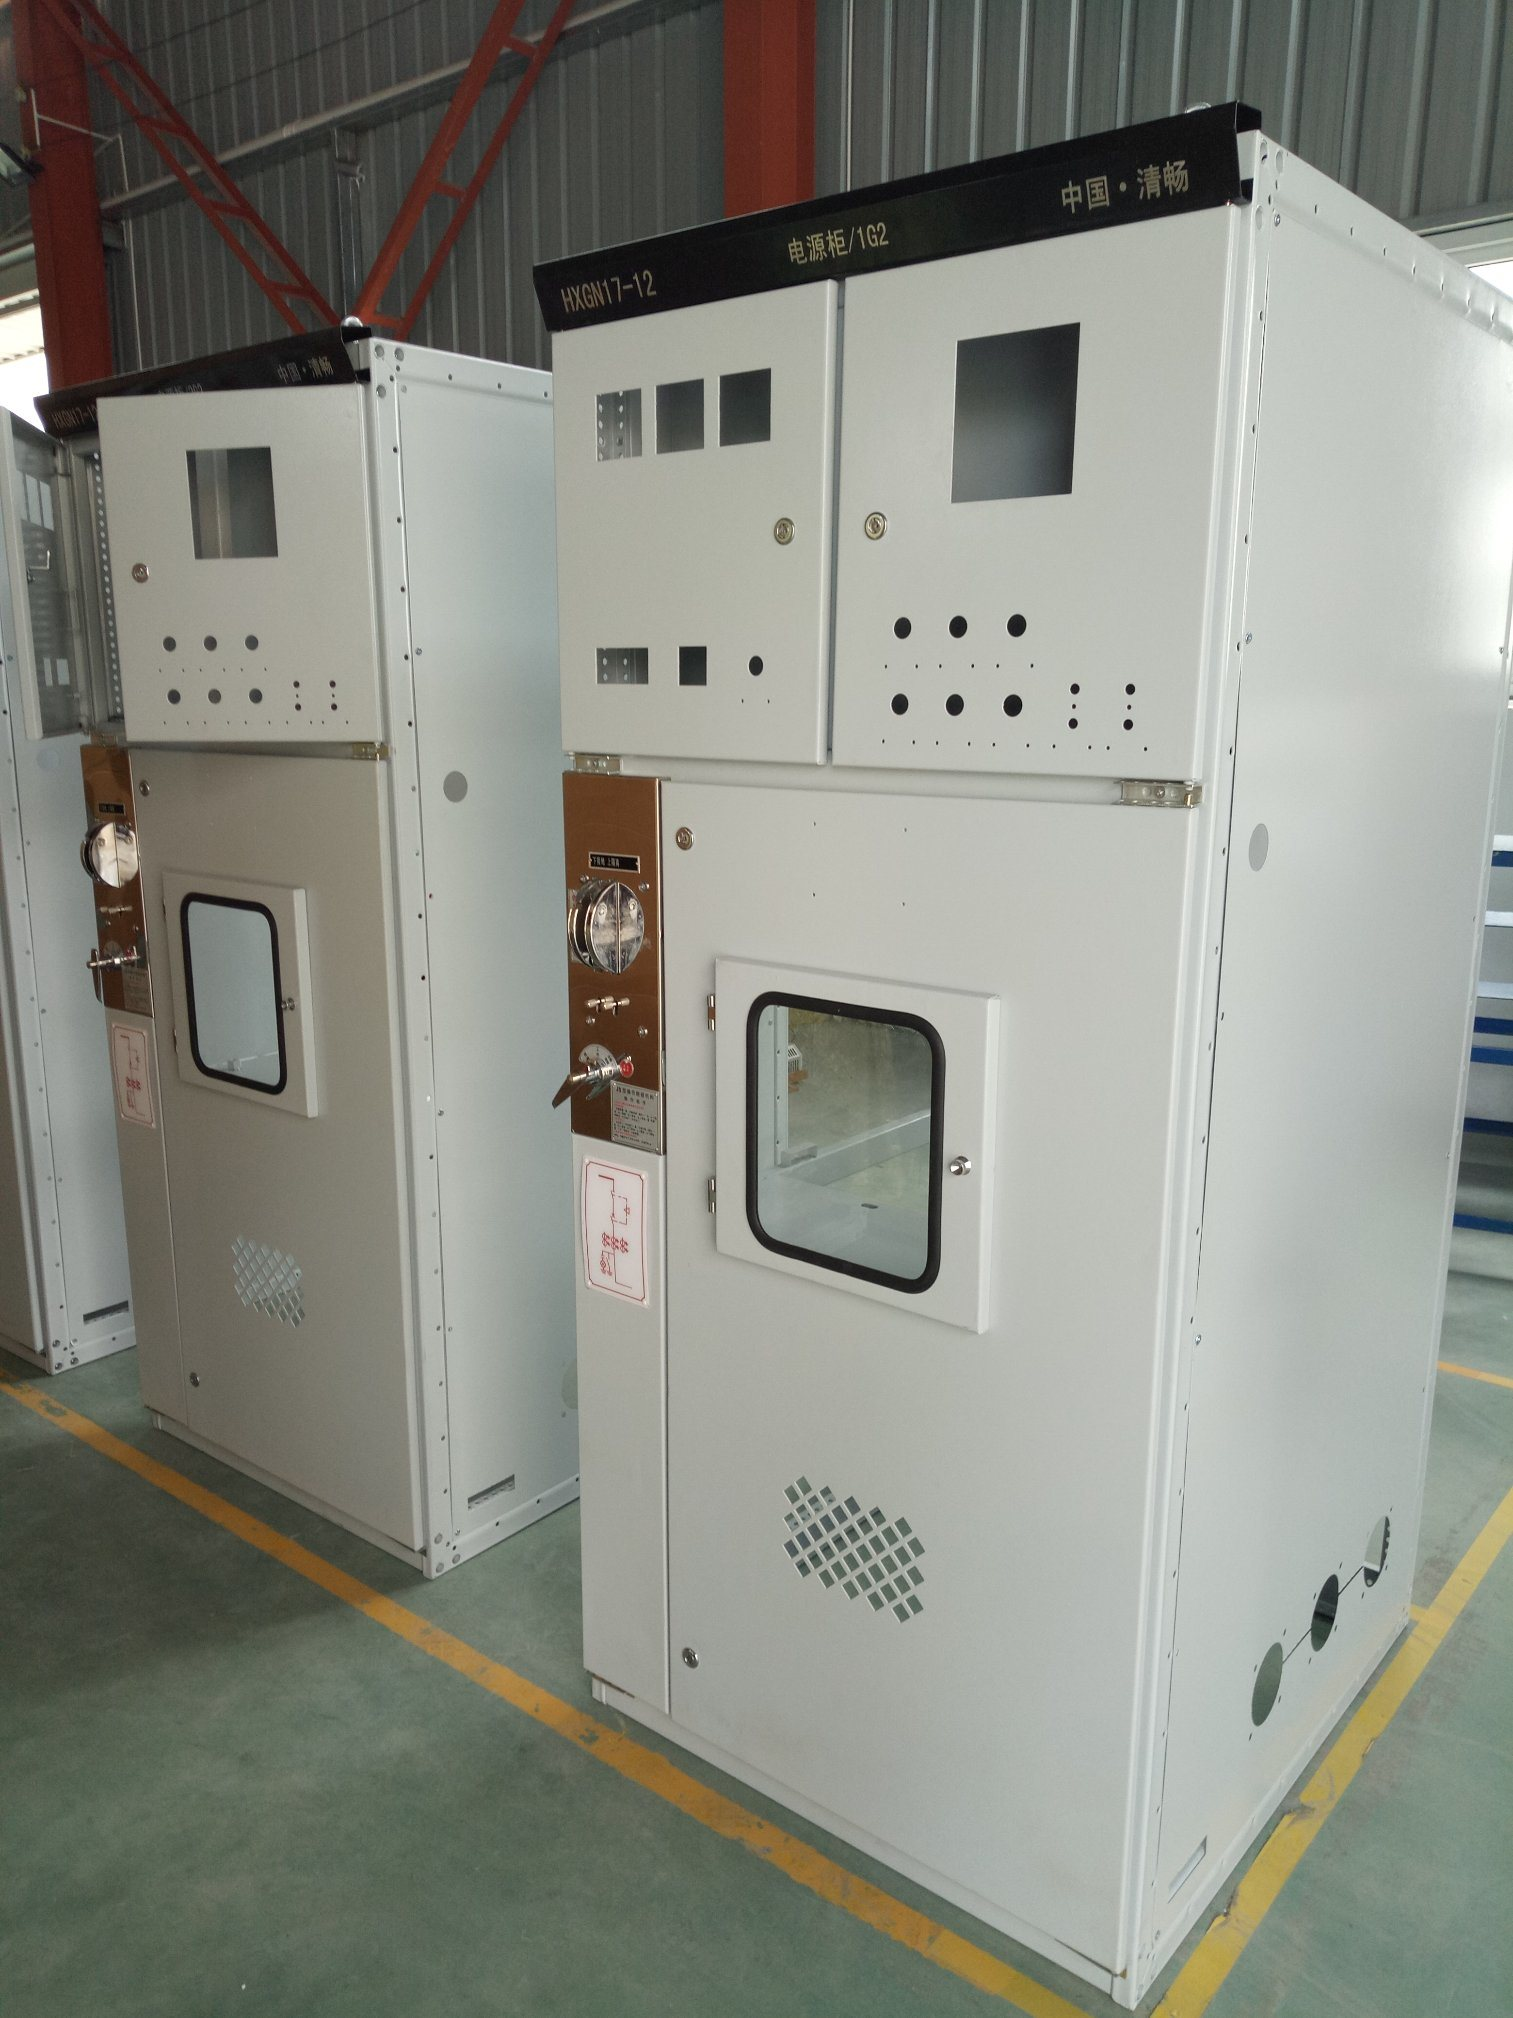 Hxgn-12 Series High Voltage Electrical Ring Main Units (RMU Cabinet)